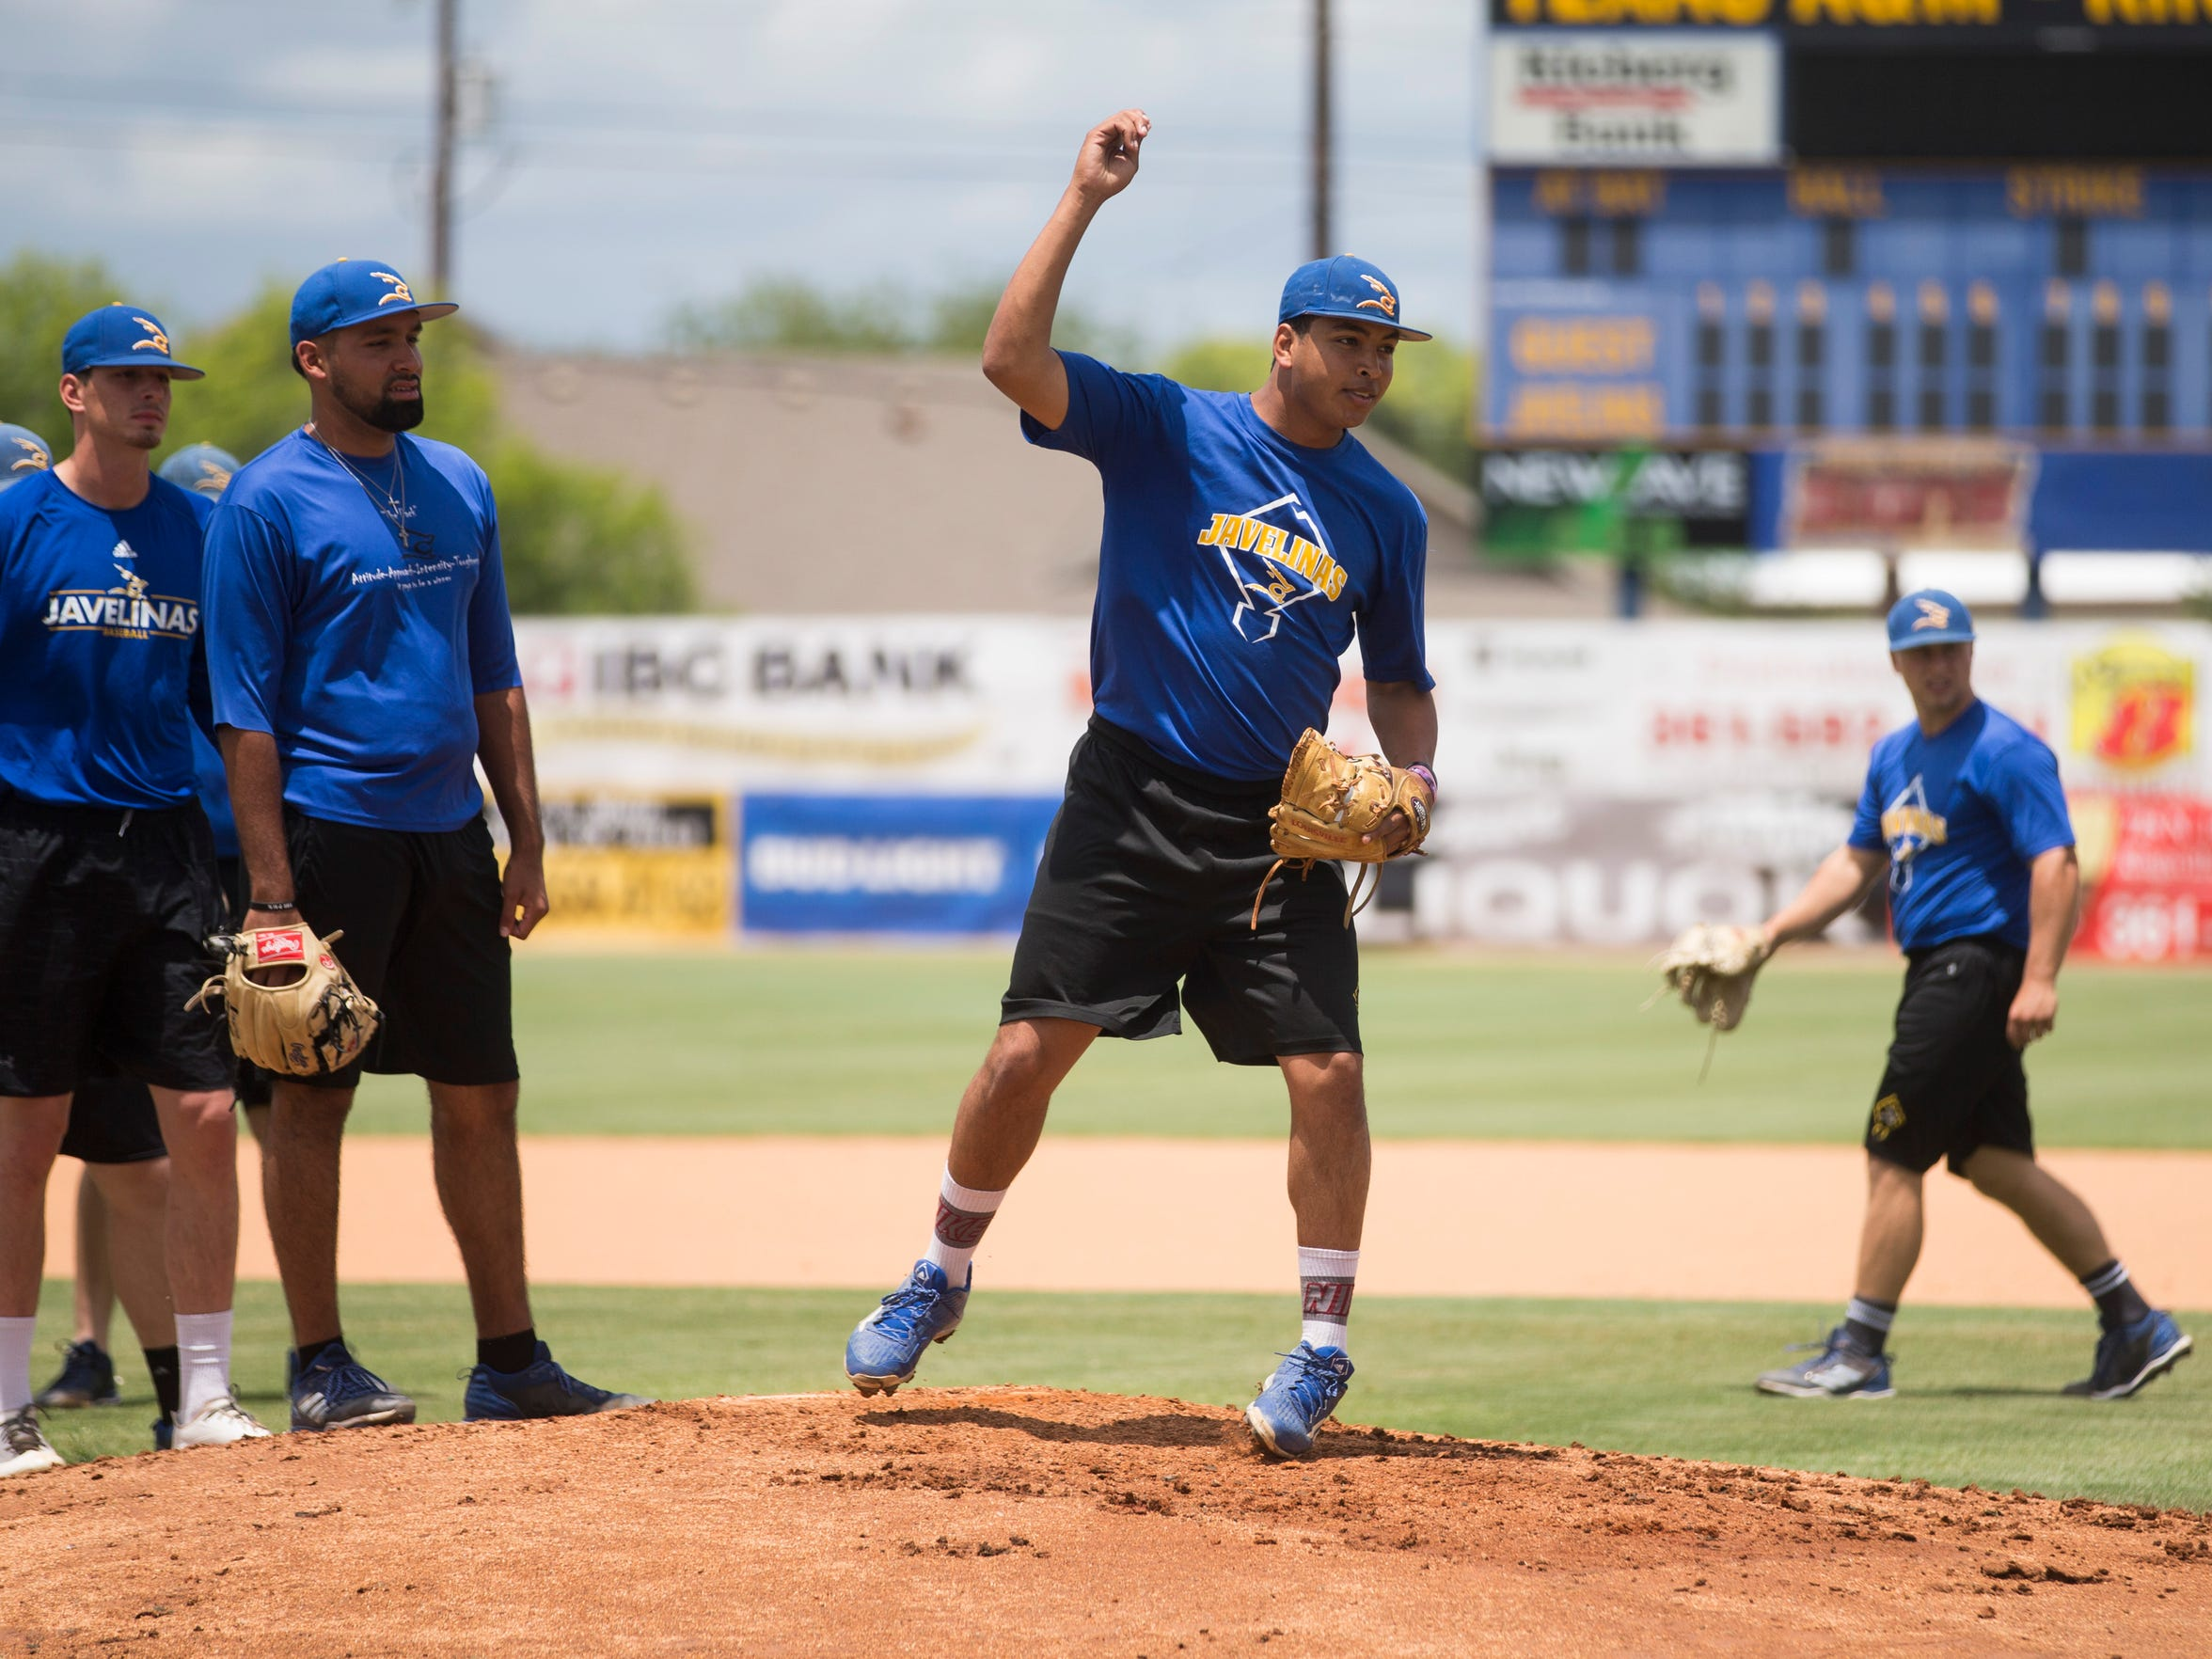 Texas A&M-Kingsville's Isaiah Lybarger works on drills